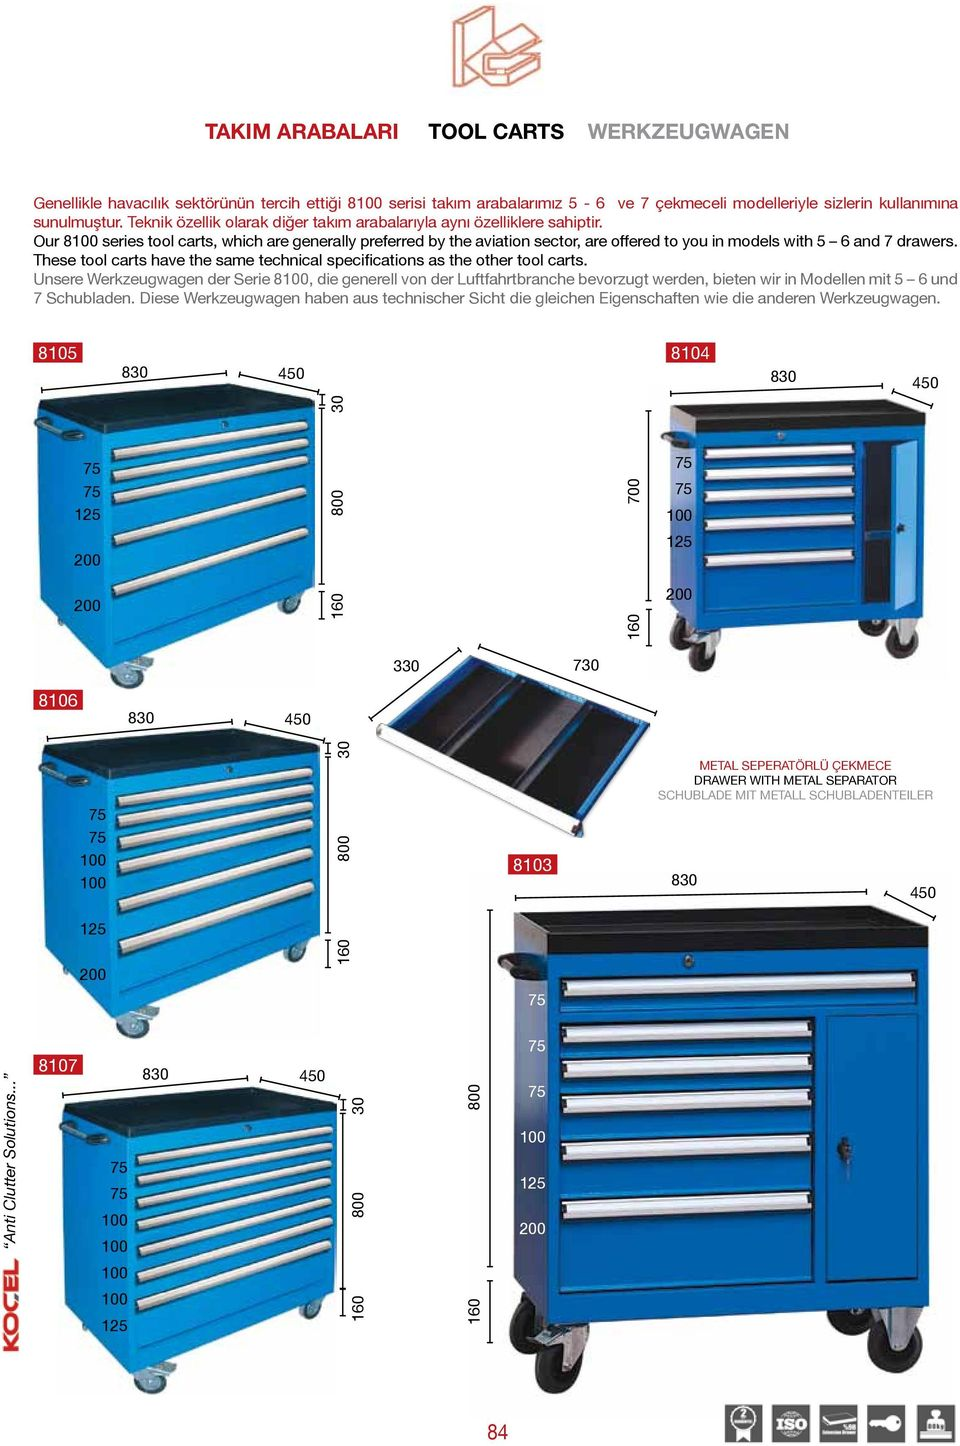 Our 8 series tool carts, which are generally preferred by the aviation sector, are offered to you in models with 5 6 and 7 drawers.